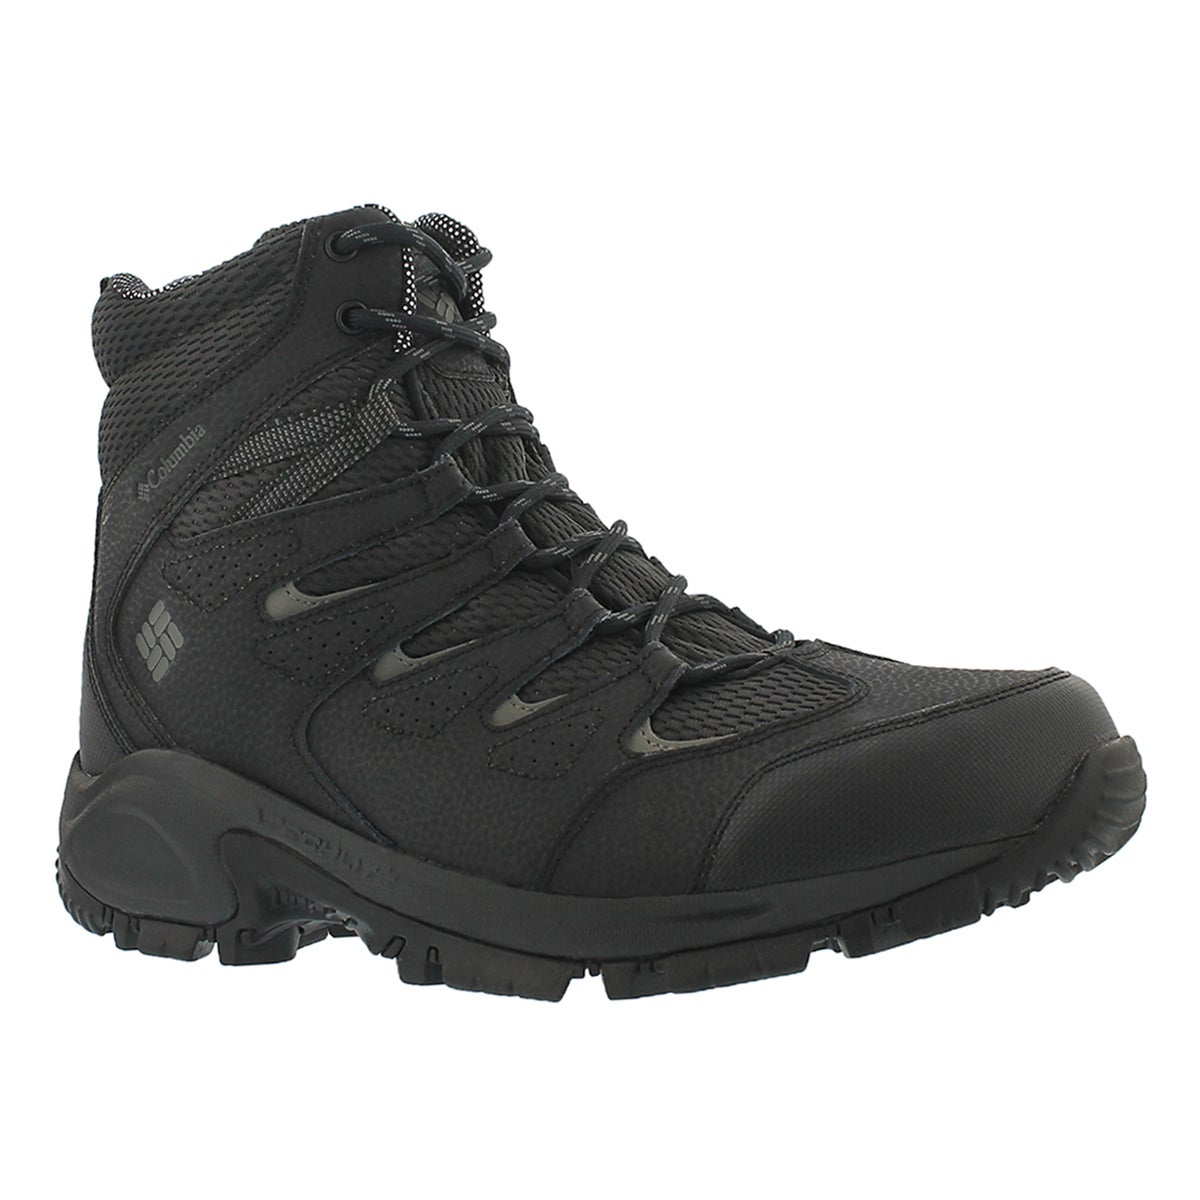 Men's GUNNISON OmniHeat shark winter boots